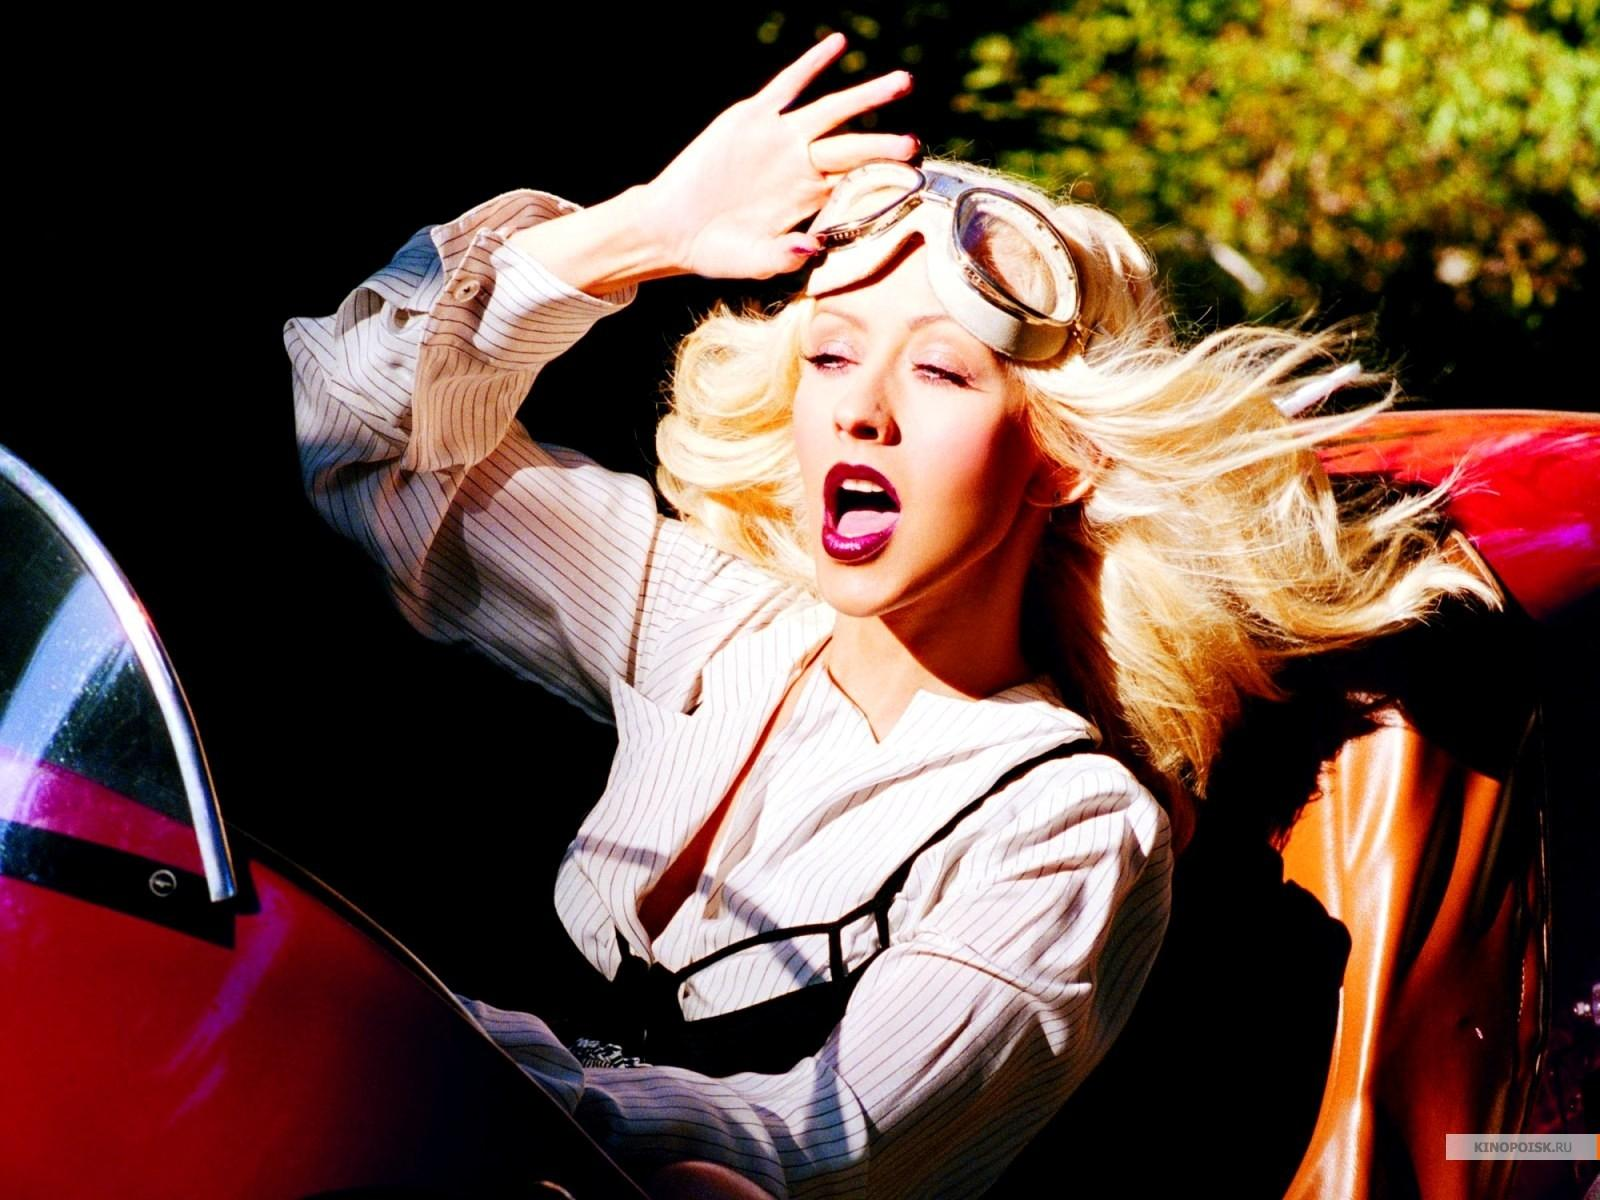 Related Pictures christina aguilera dynamite dedicated to yen flickr ...